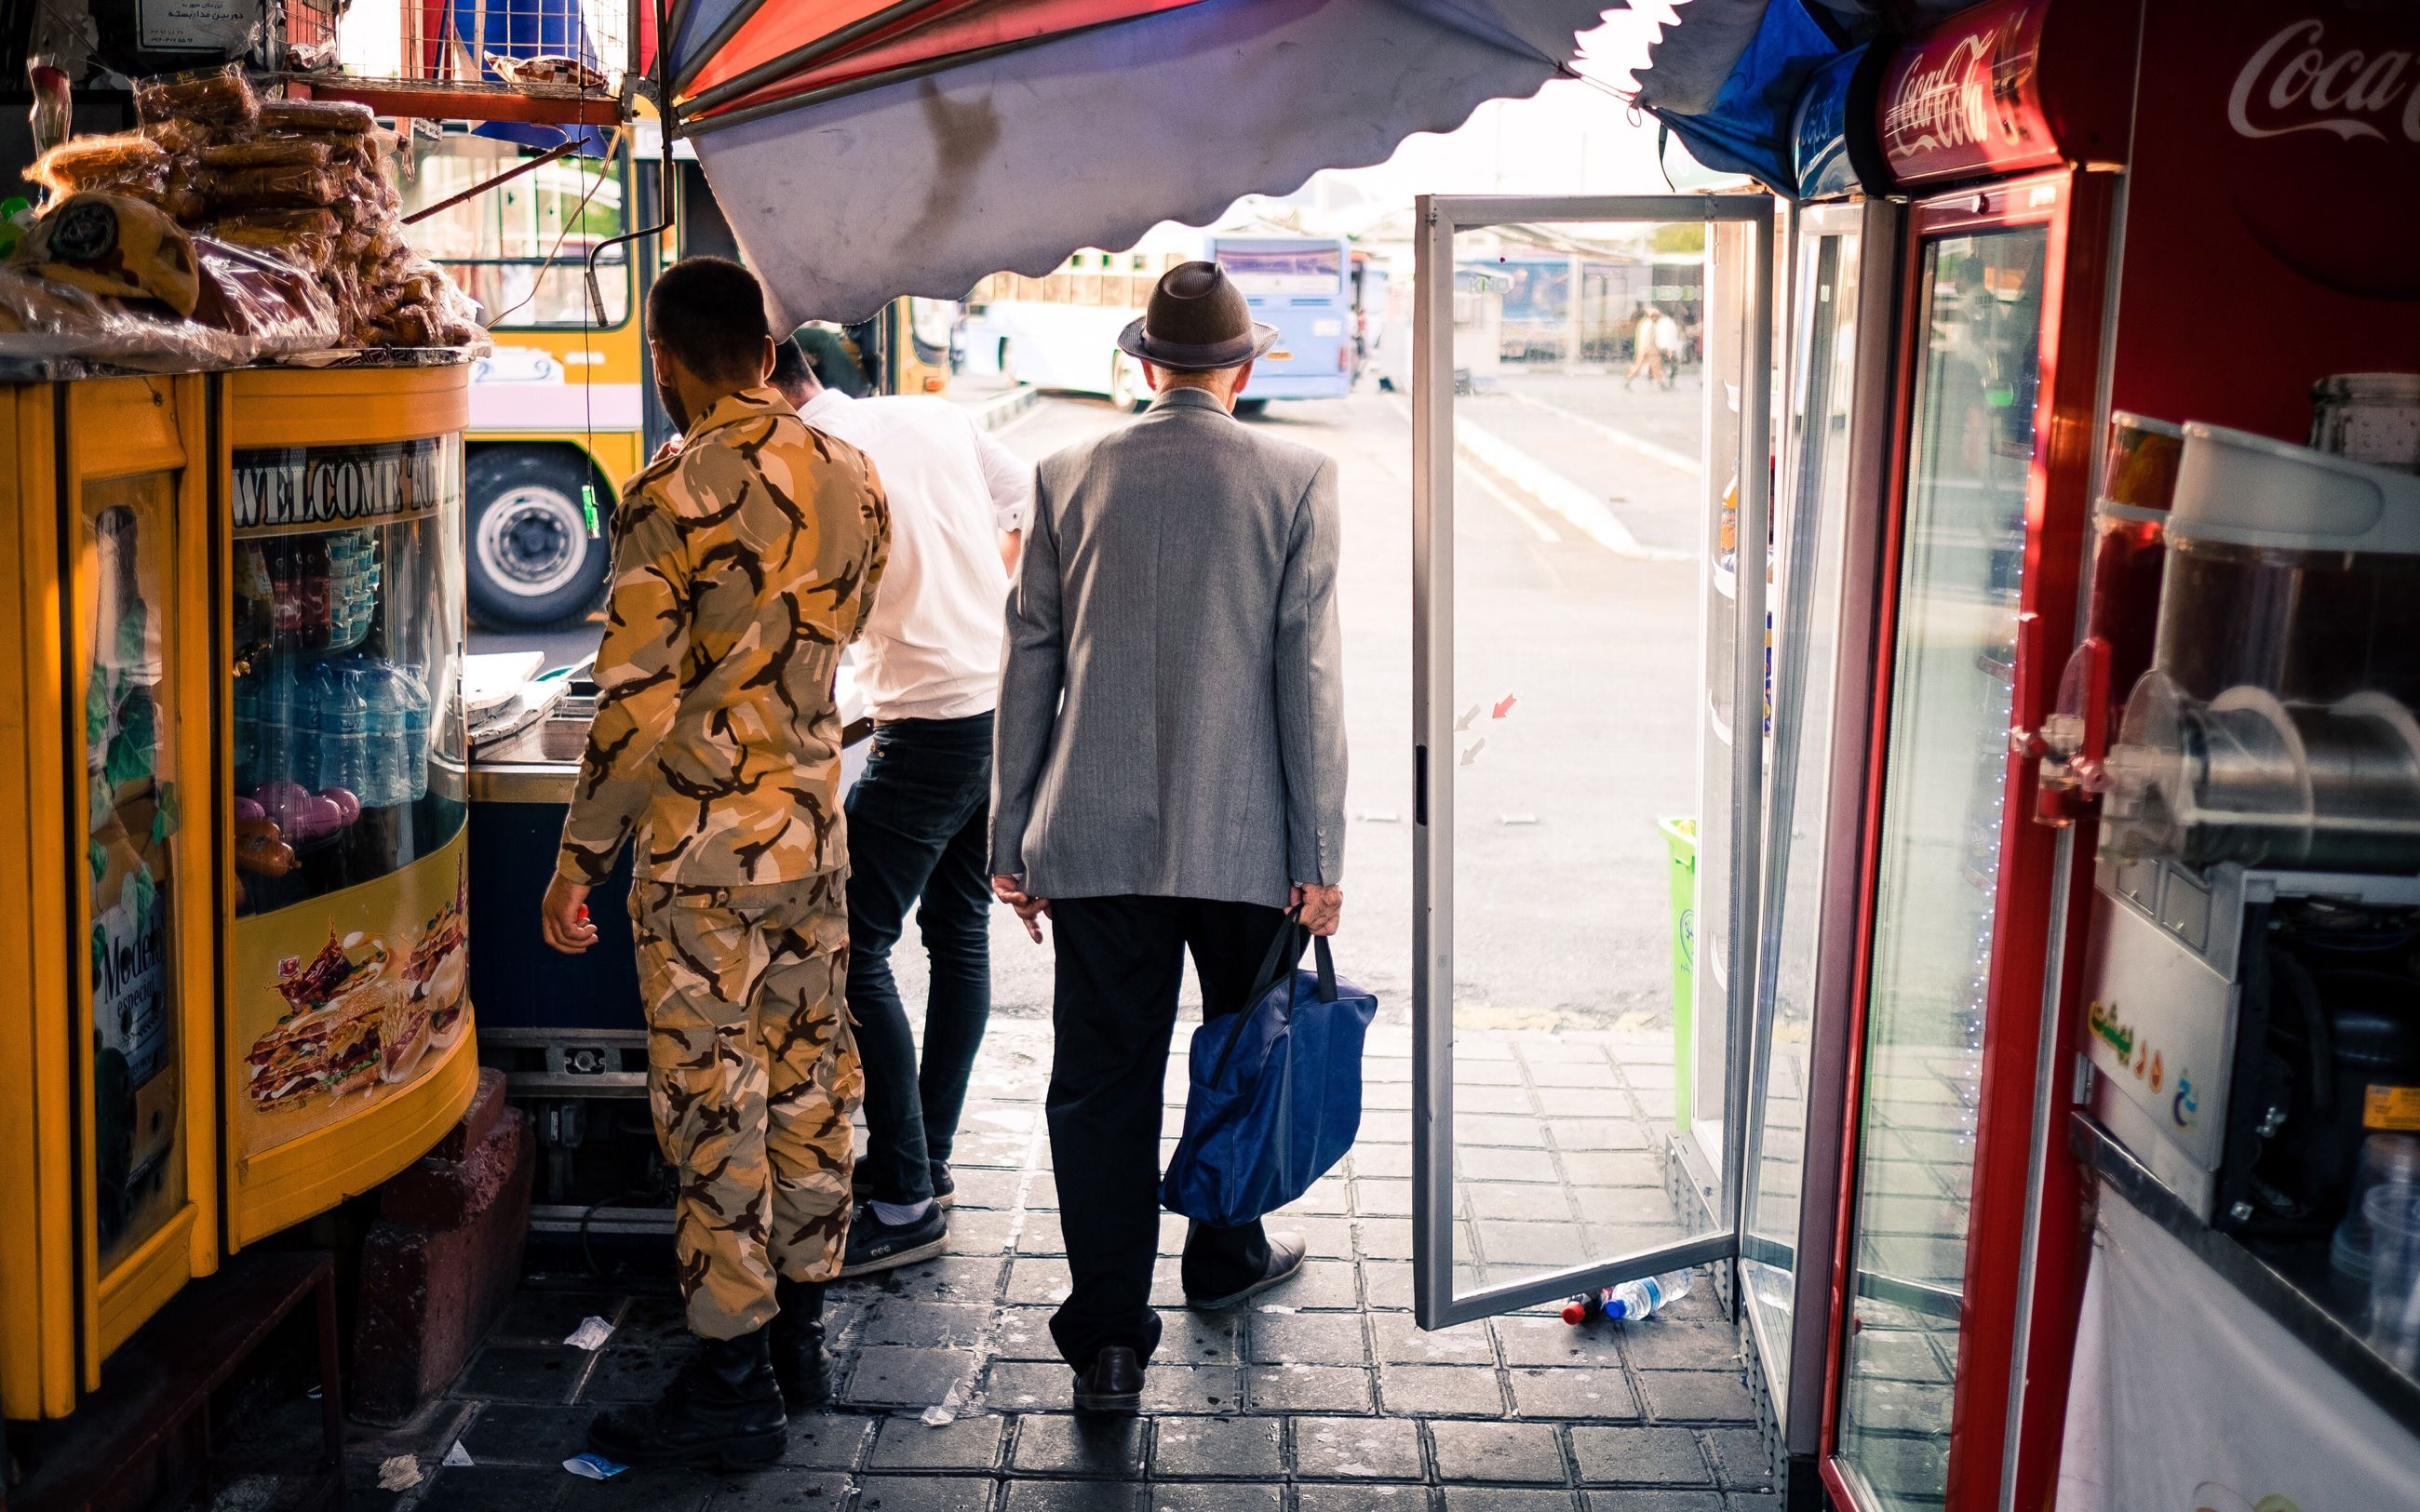 men, real people, two people, public transportation, transportation, standing, train - vehicle, lifestyles, full length, day, outdoors, city, adult, only men, adults only, people